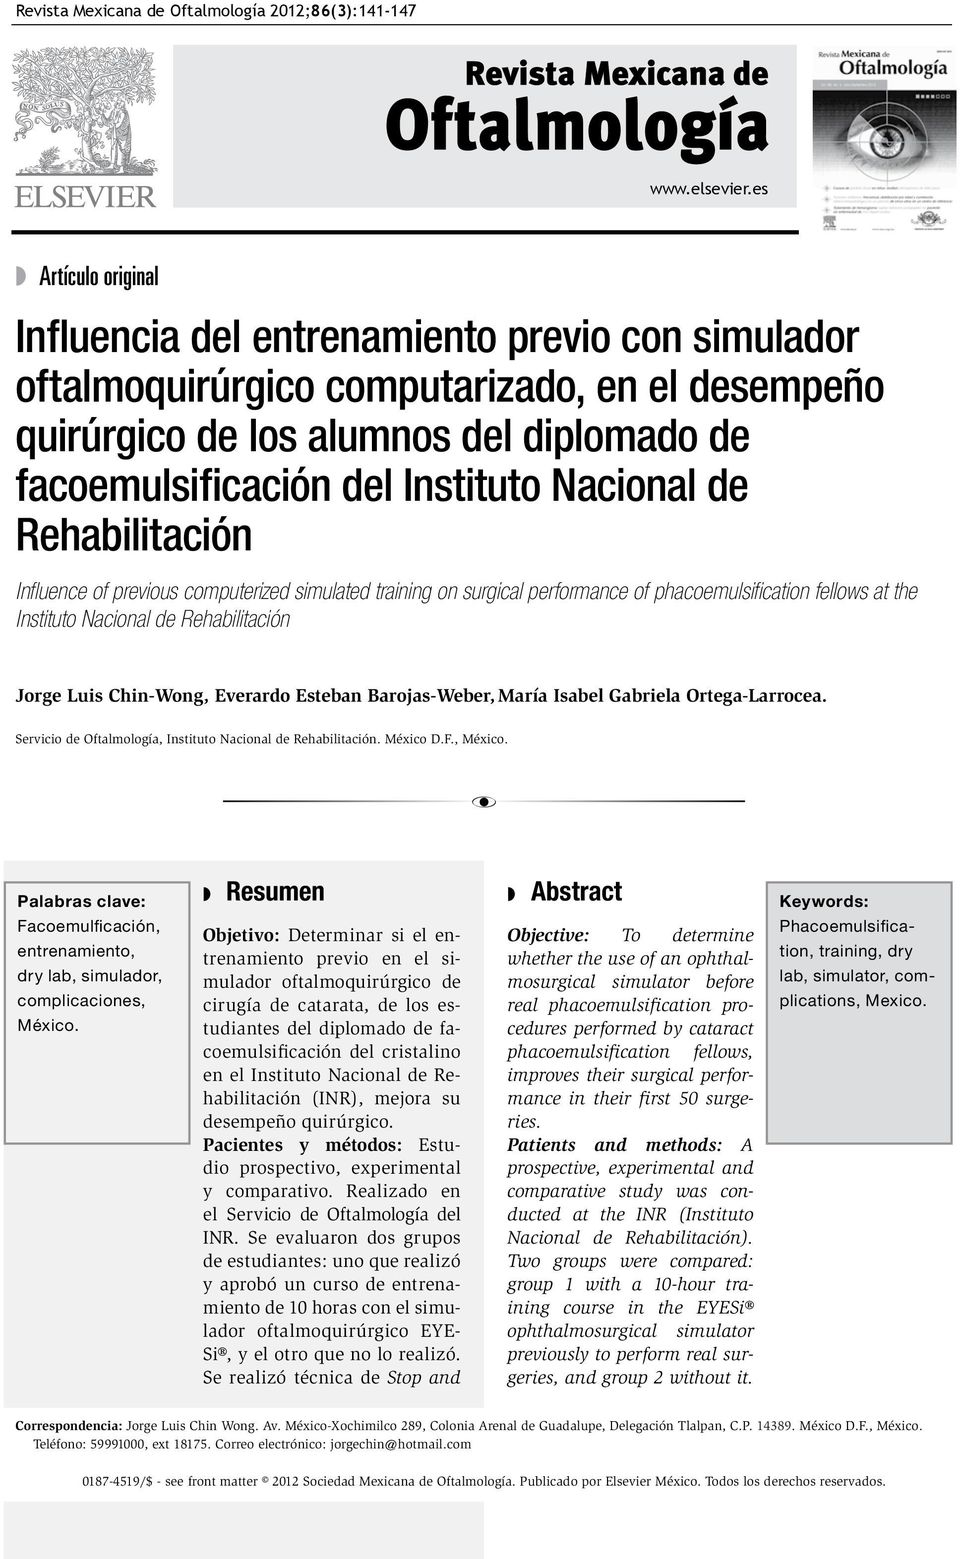 Nacional de Rehabilitación Influence of previous computerized simulated training on surgical performance of phacoemulsification fellows at the Instituto Nacional de Rehabilitación Jorge Luis